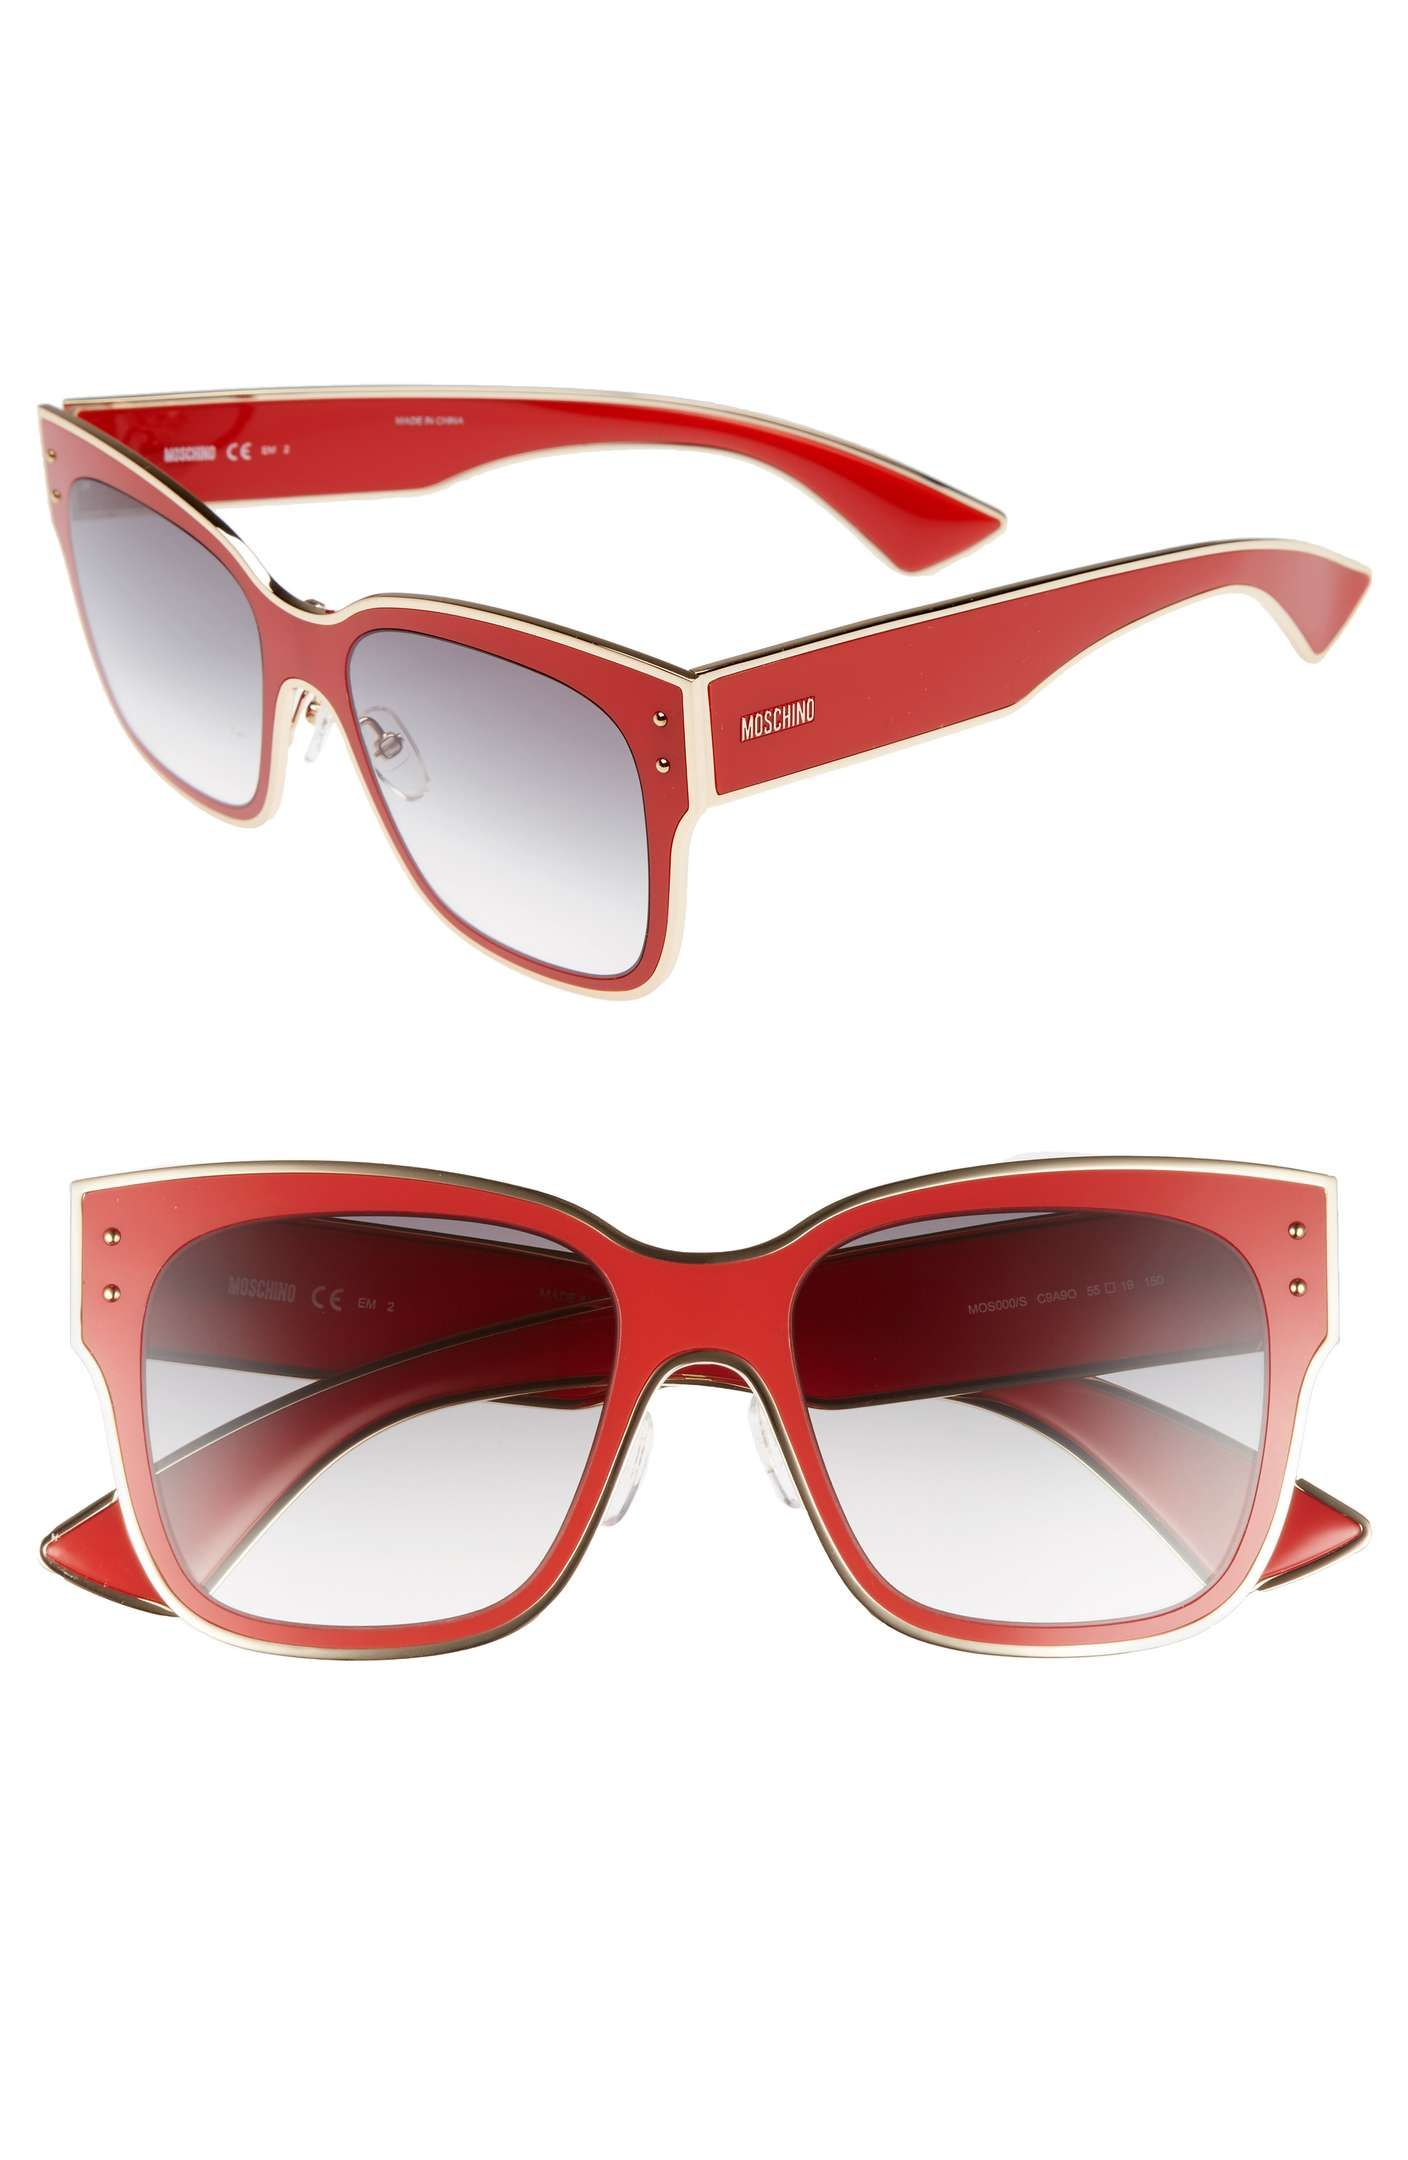 eaed31c1c09c Main Image - Moschino 55mm Cat Eye Sunglasses